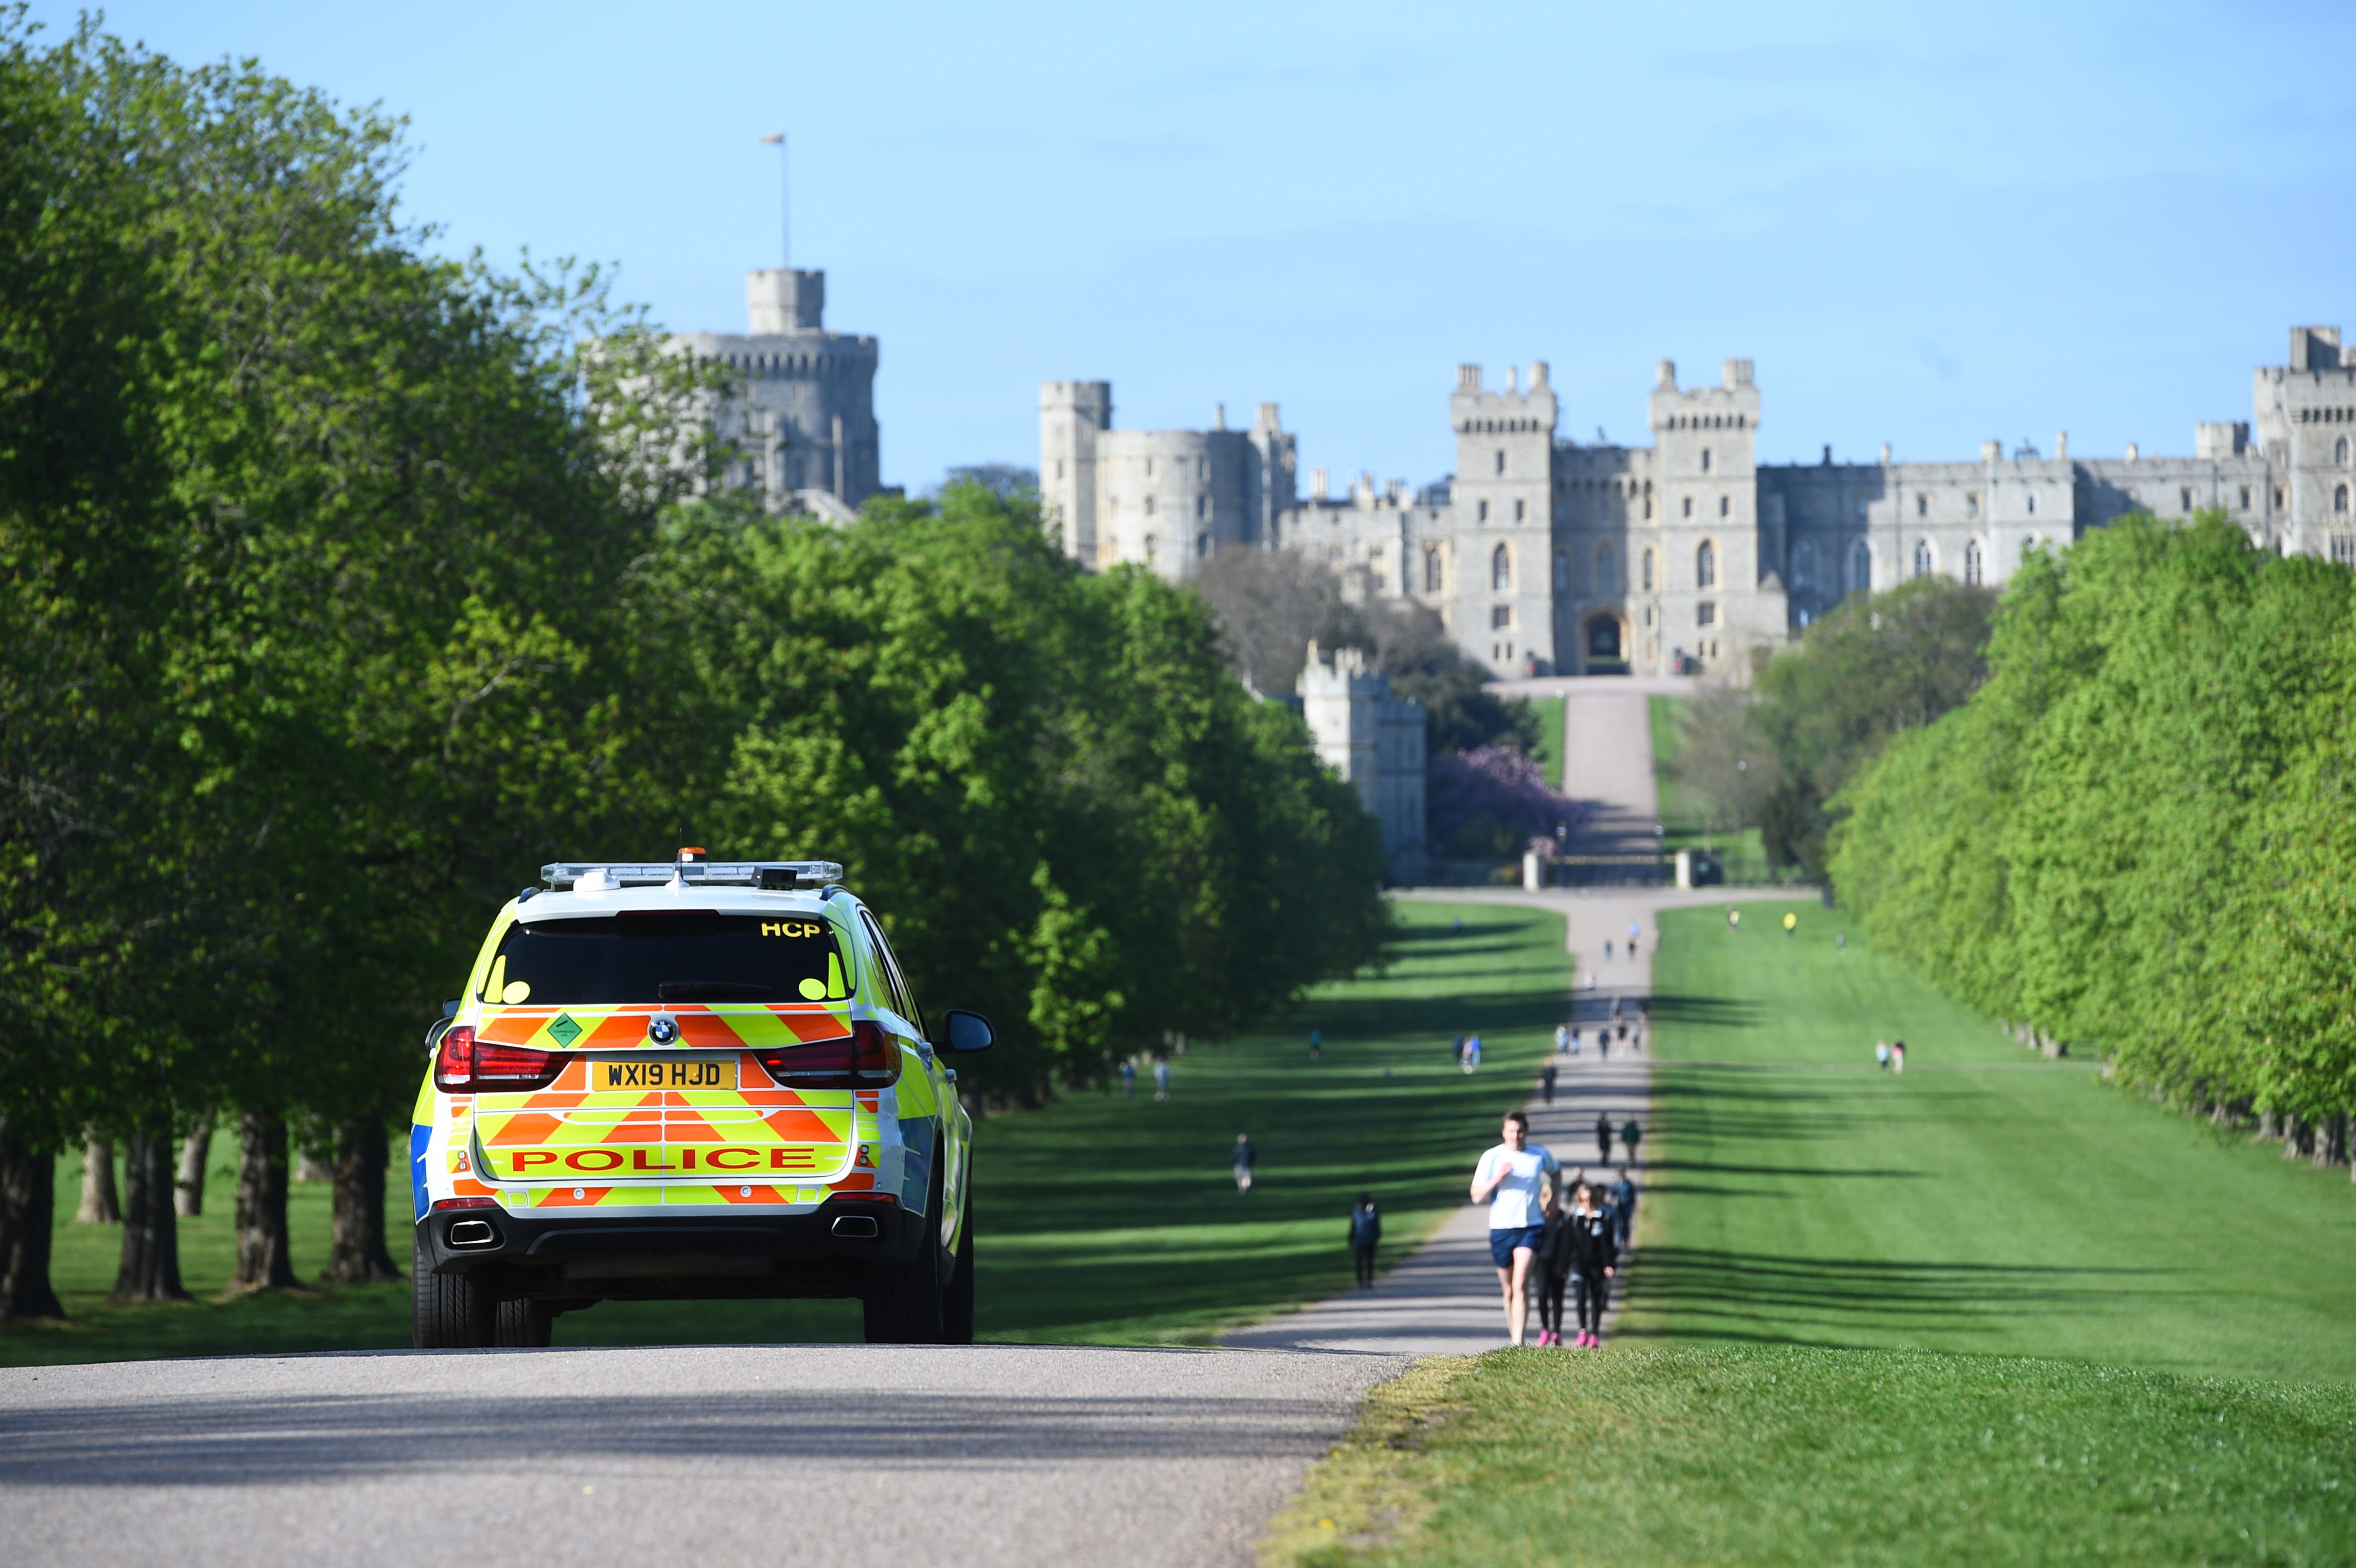 Police monitor people on the Long Walk in Windsor, as the UK continues in lockdown to help curb the spread of the coronavirus.